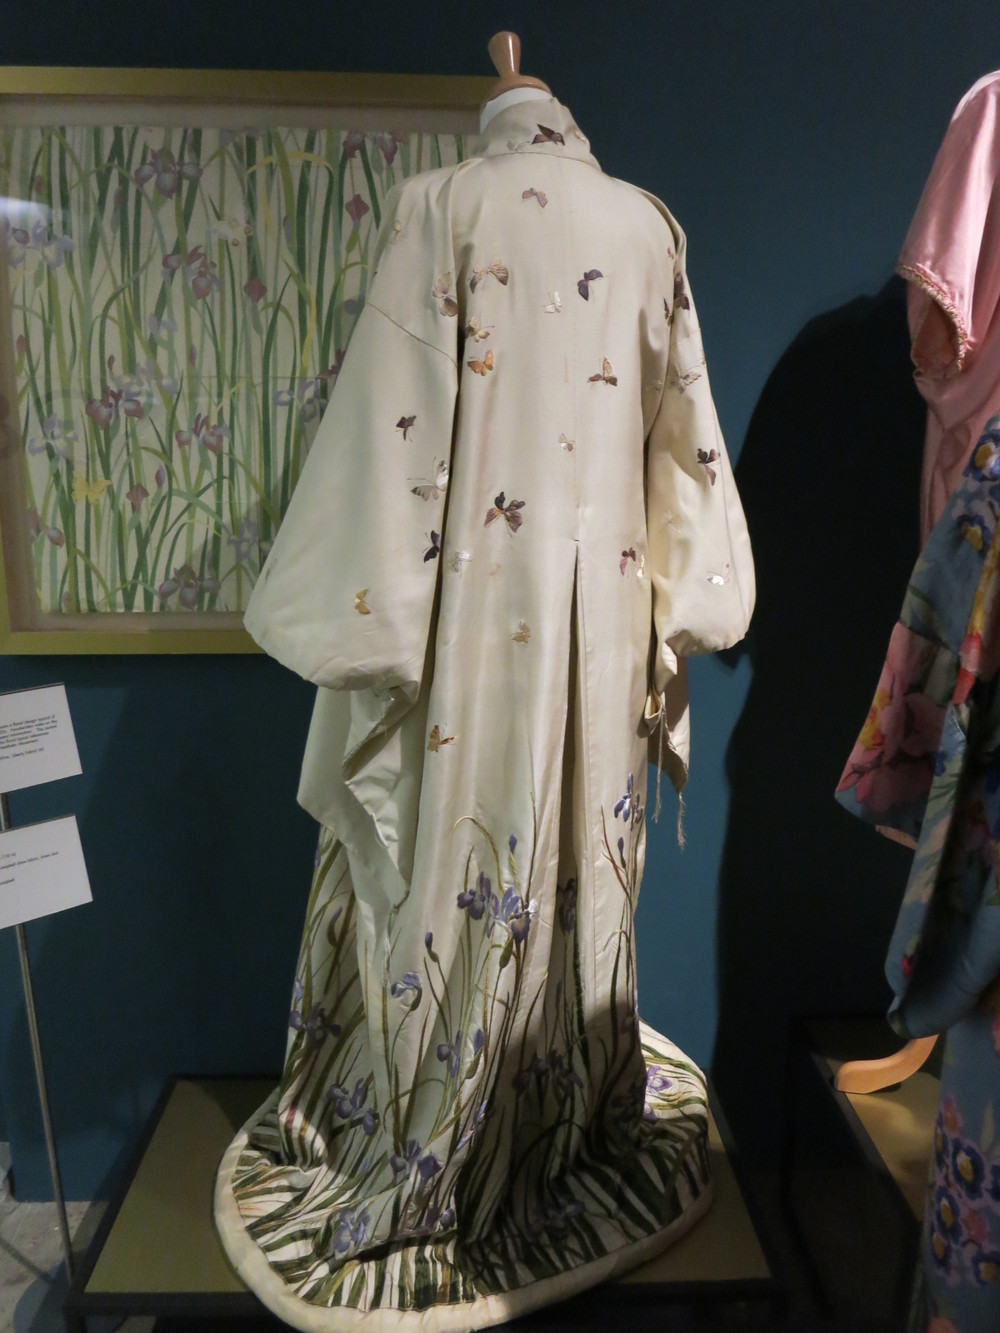 Liberty in Fashion exhibition at the Fashion & Textile Museum, Bermondsey, London 2015. This is a traditional silk embroidered kimino that had been imported by Liberty in the 1920s.